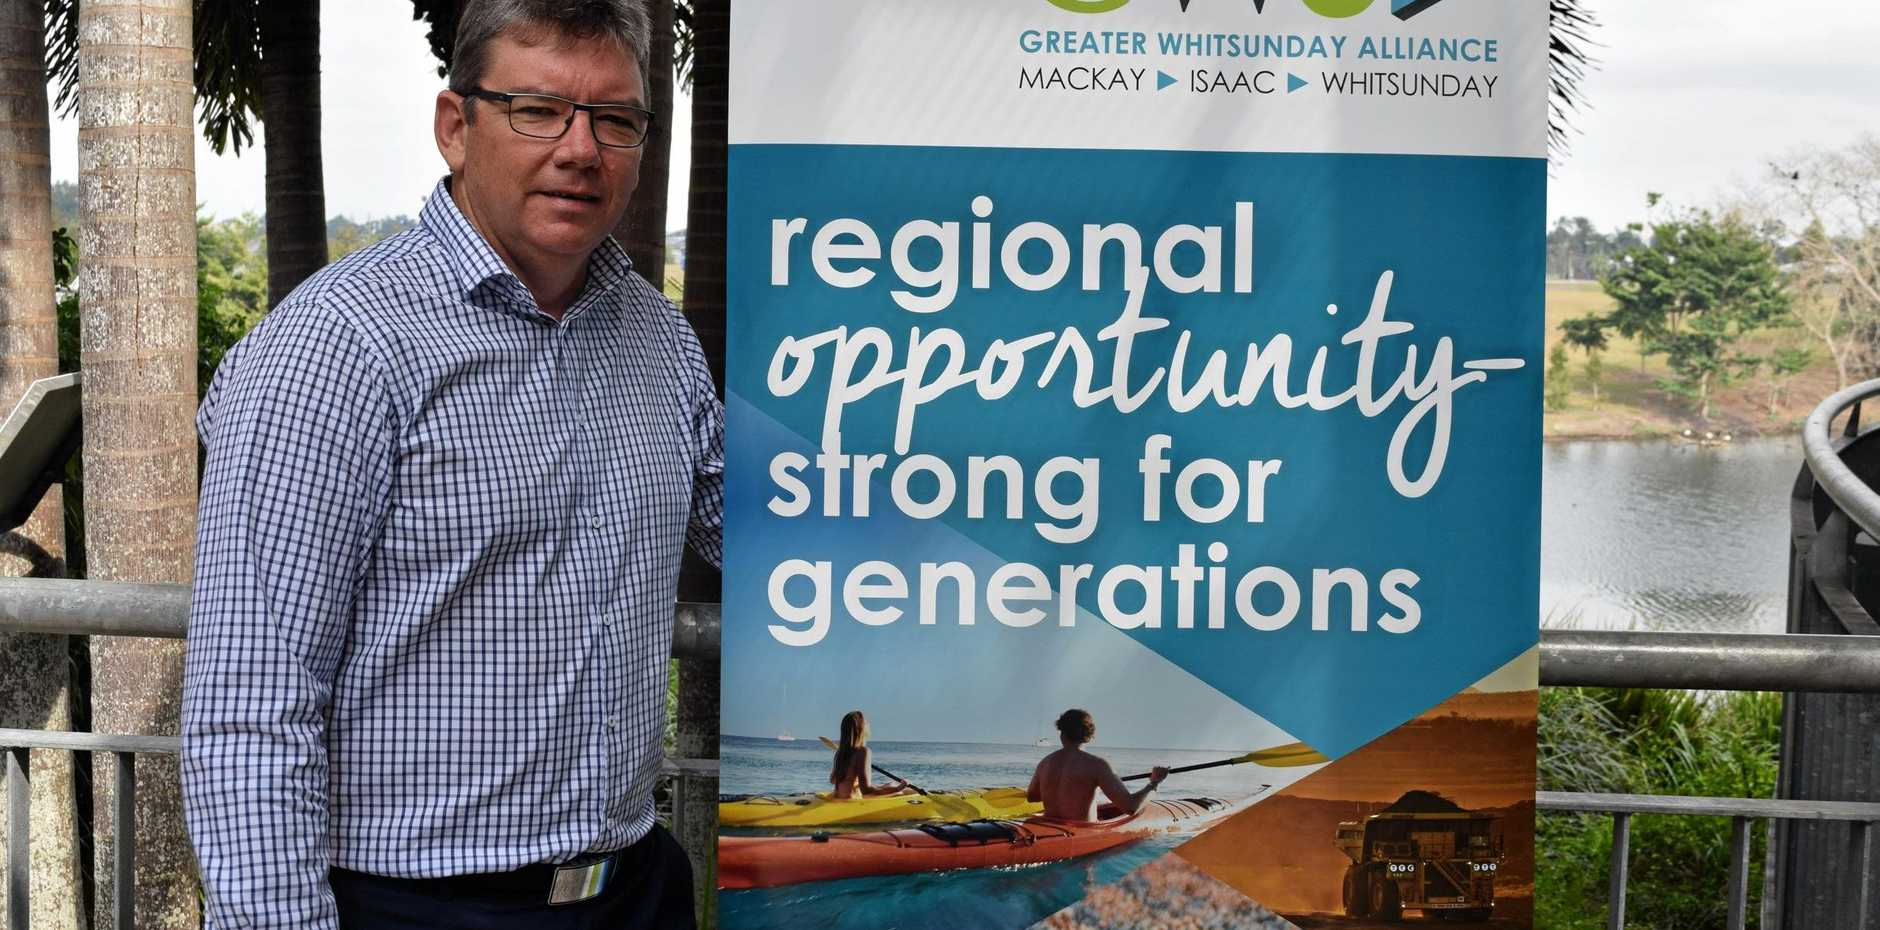 Greater Whitsunday Alliance CEO Garry Scanlan steps down.